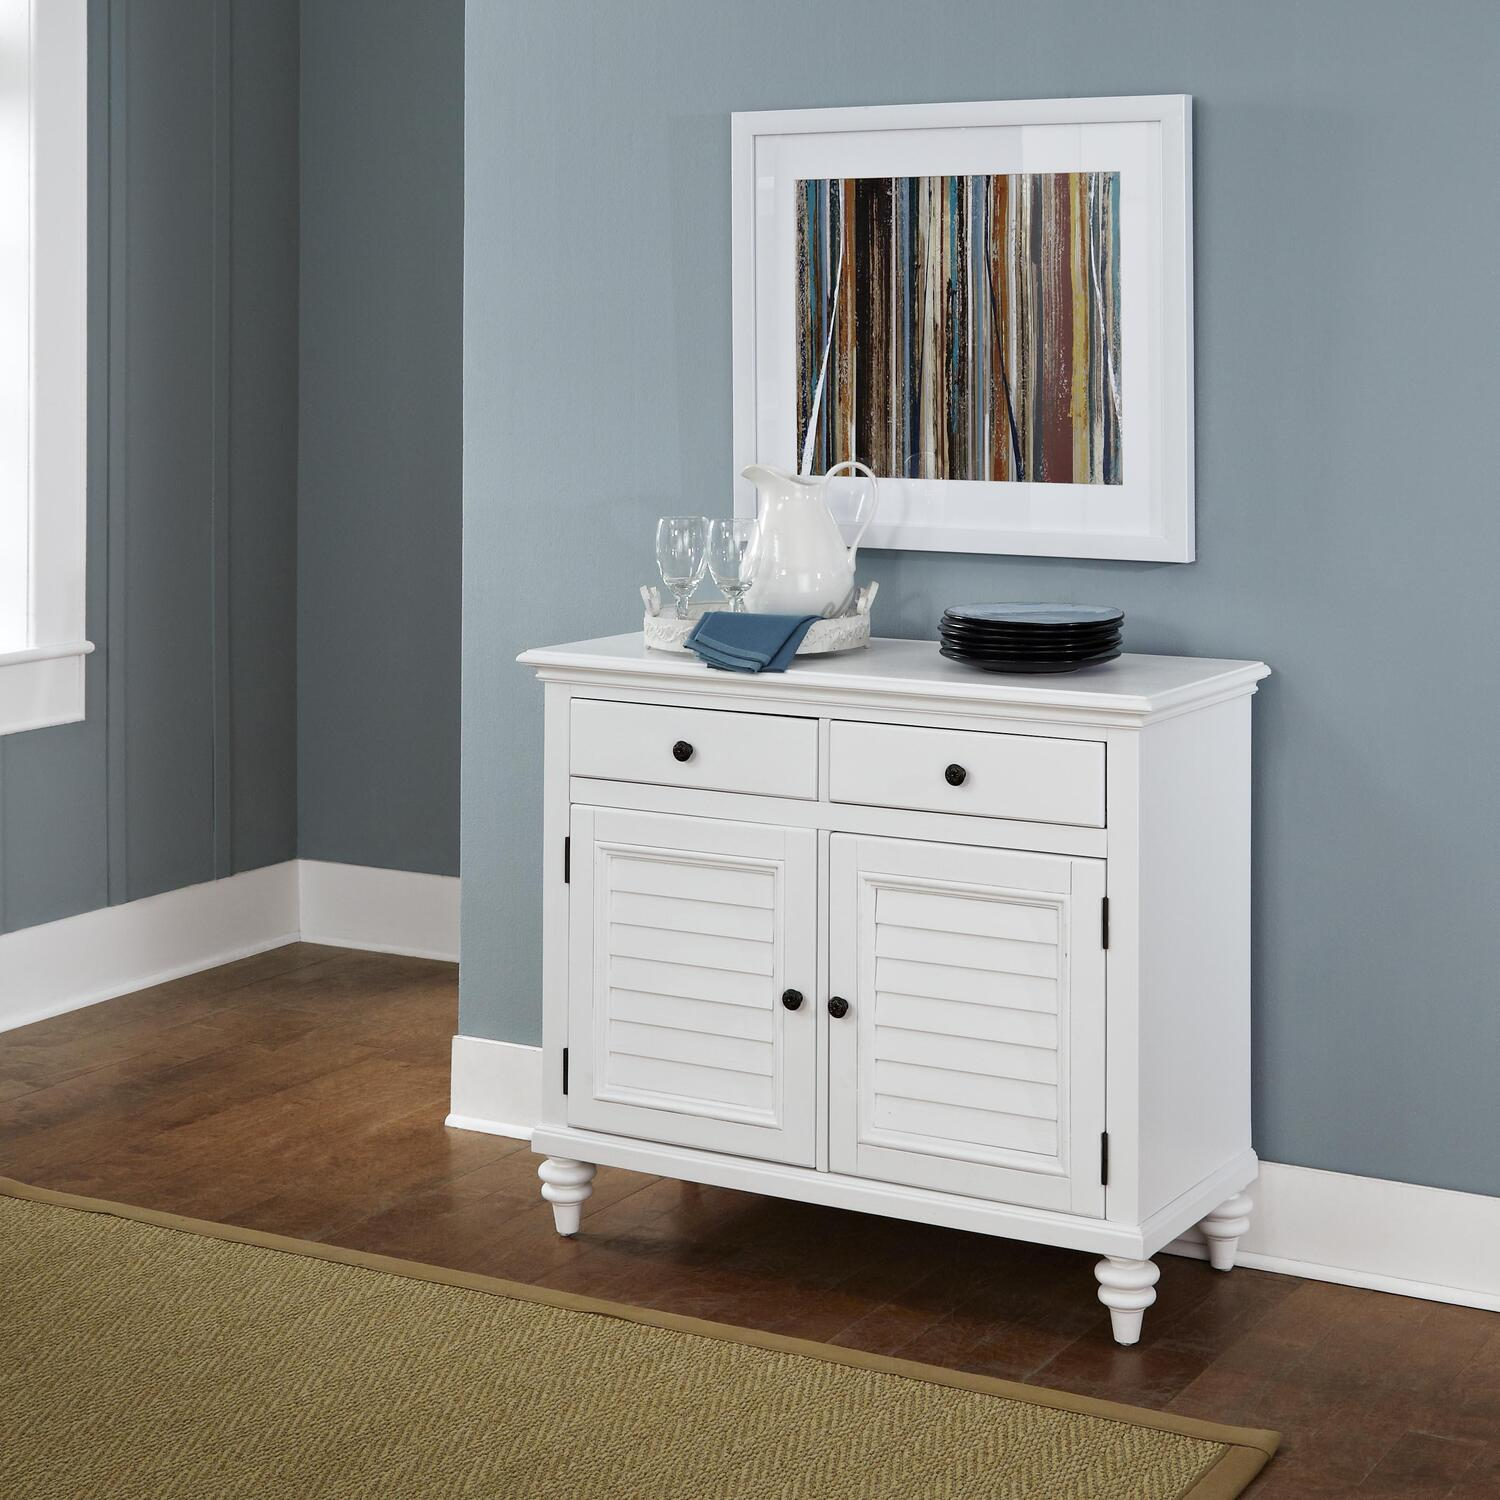 Marvelous photograph of Home Styles Bermuda Brushed White Buffet by OJ Commerce 5543 61 $661  with #624935 color and 2805x2805 pixels